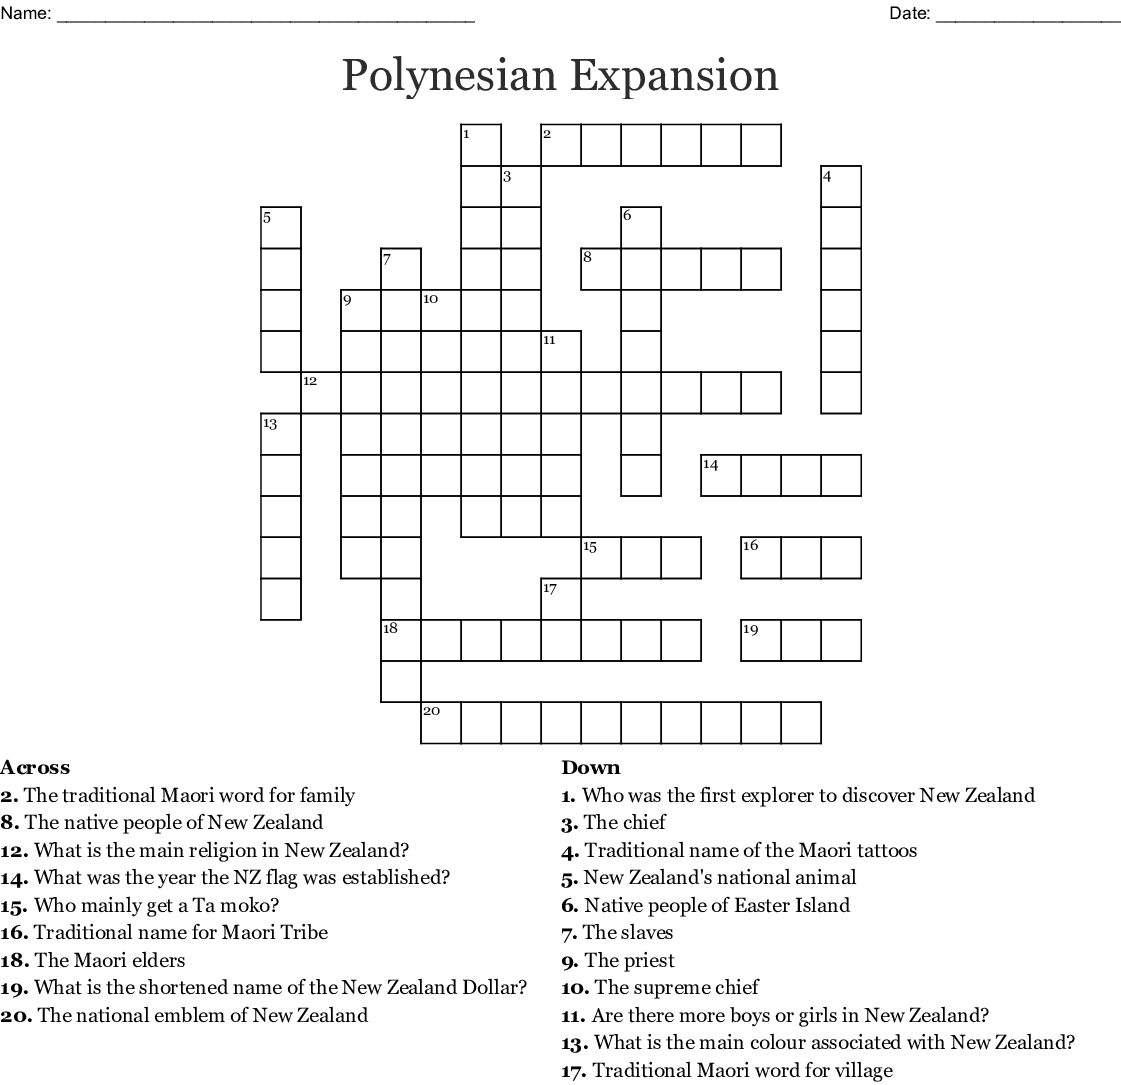 Polynesian Expansion Crossword